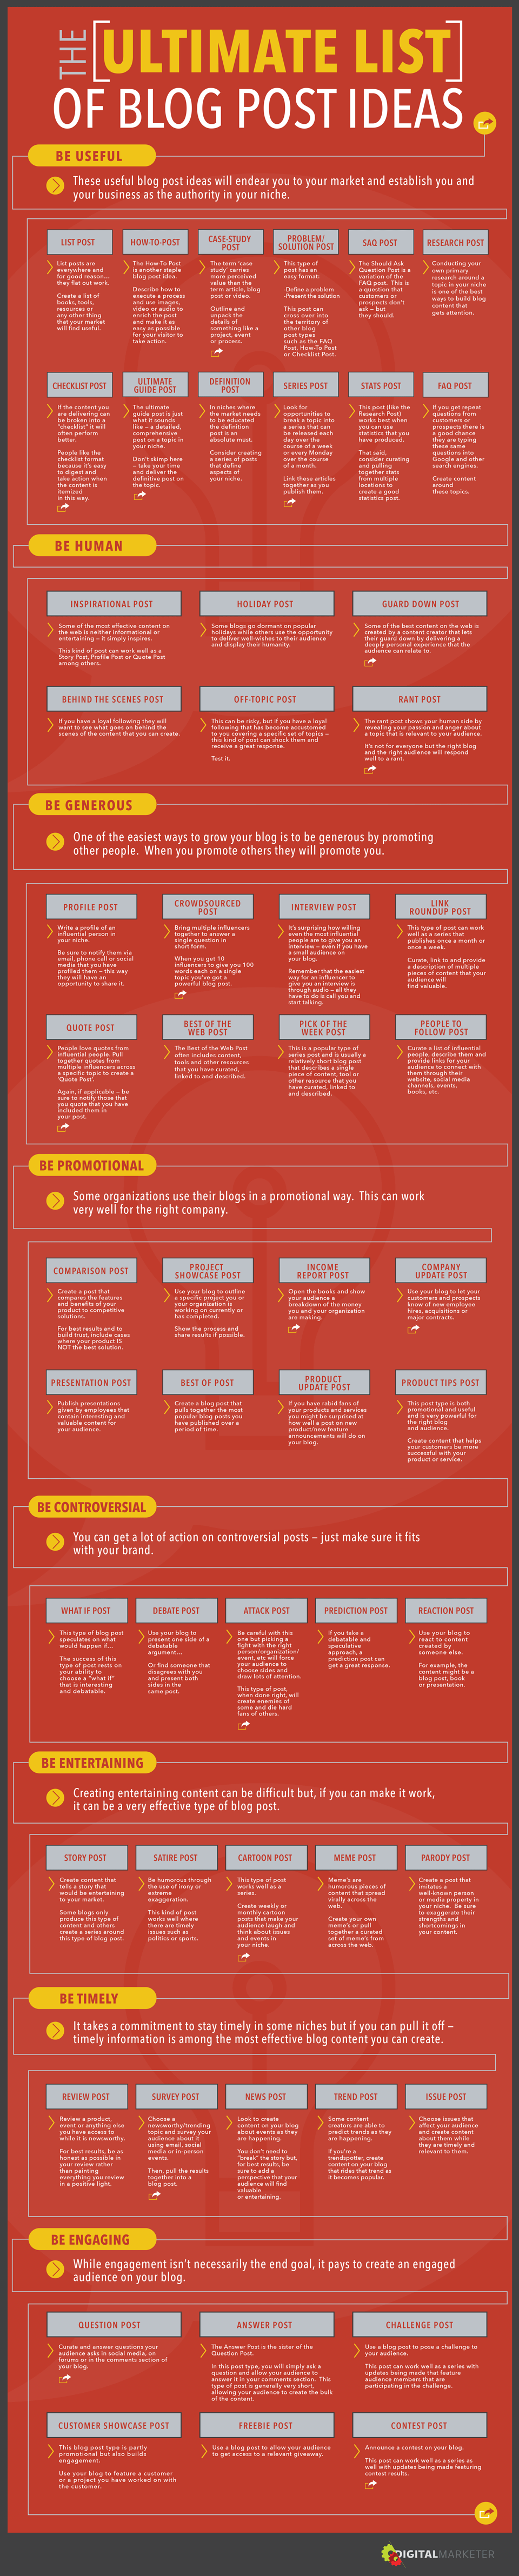 The Ultimate List of #Blog Post Ideas #contentmarketing #infographic